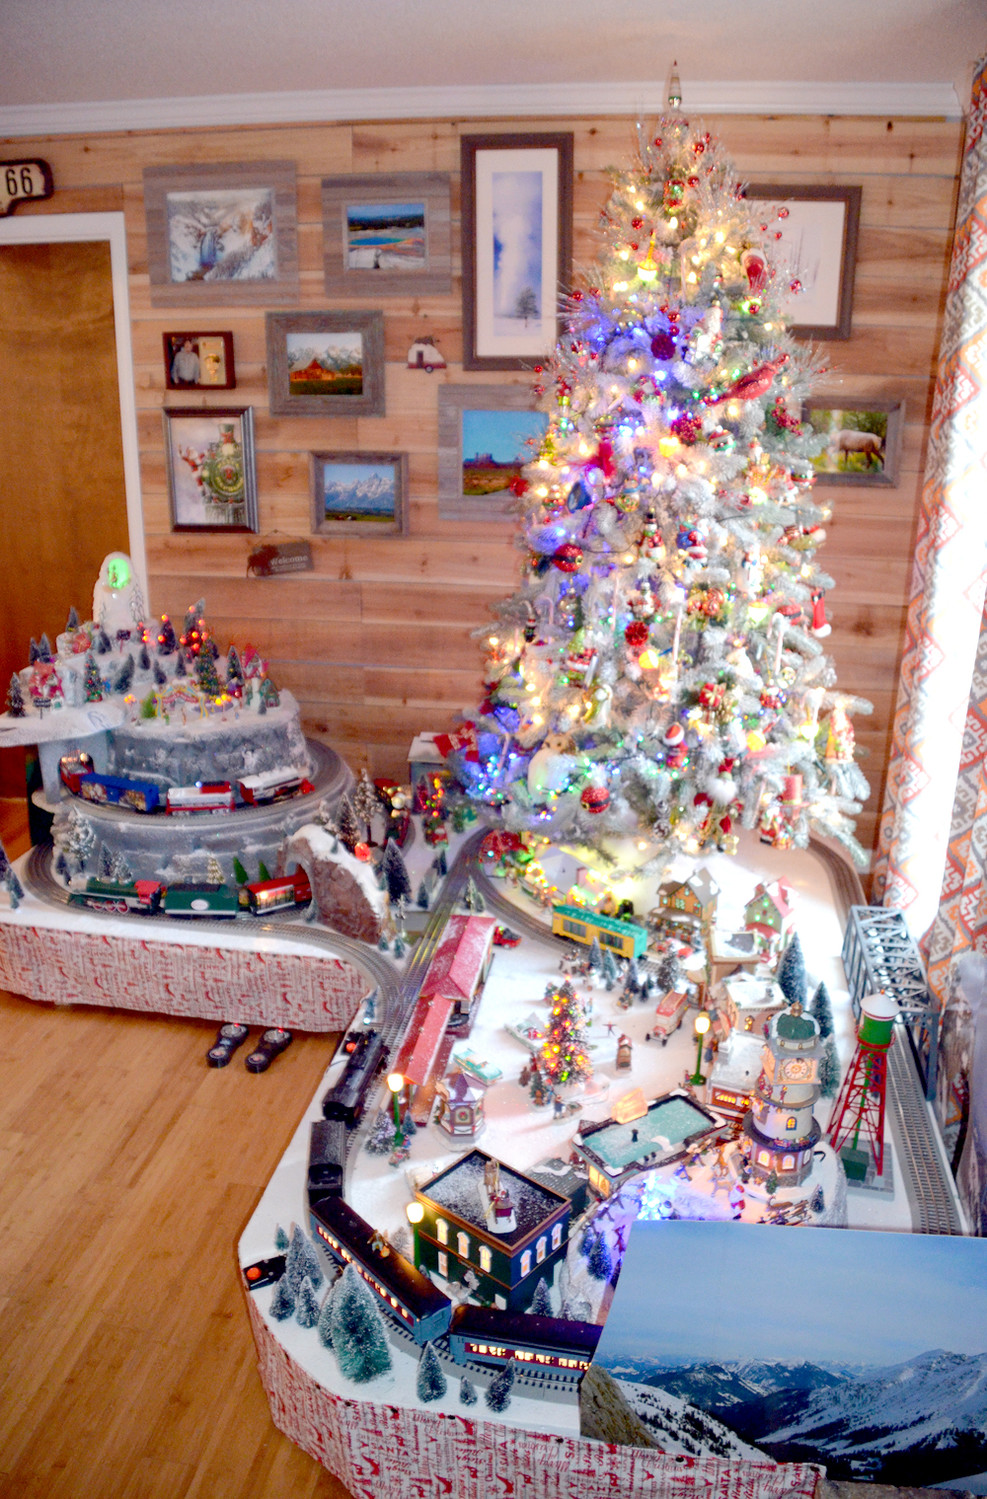 THREE LIONEL TRAINS traverse over mountains, bridges and under the massive Christmas tree in the Baynes family living room.